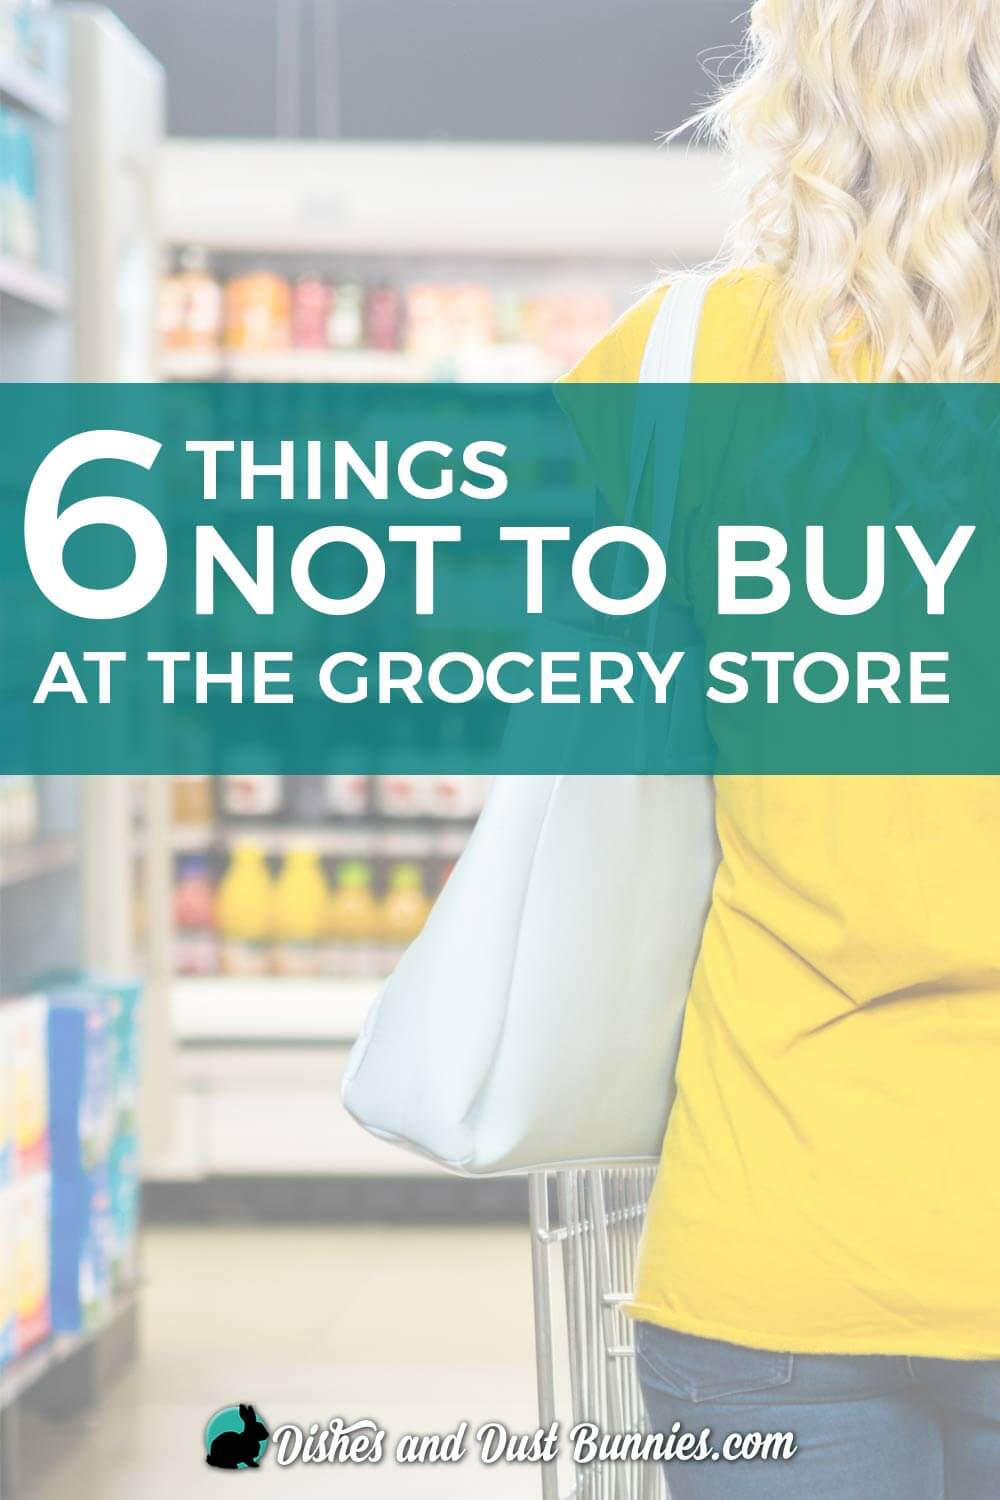 6 Things Not to Buy at the Grocery Store from dishesanddustbunnies.com